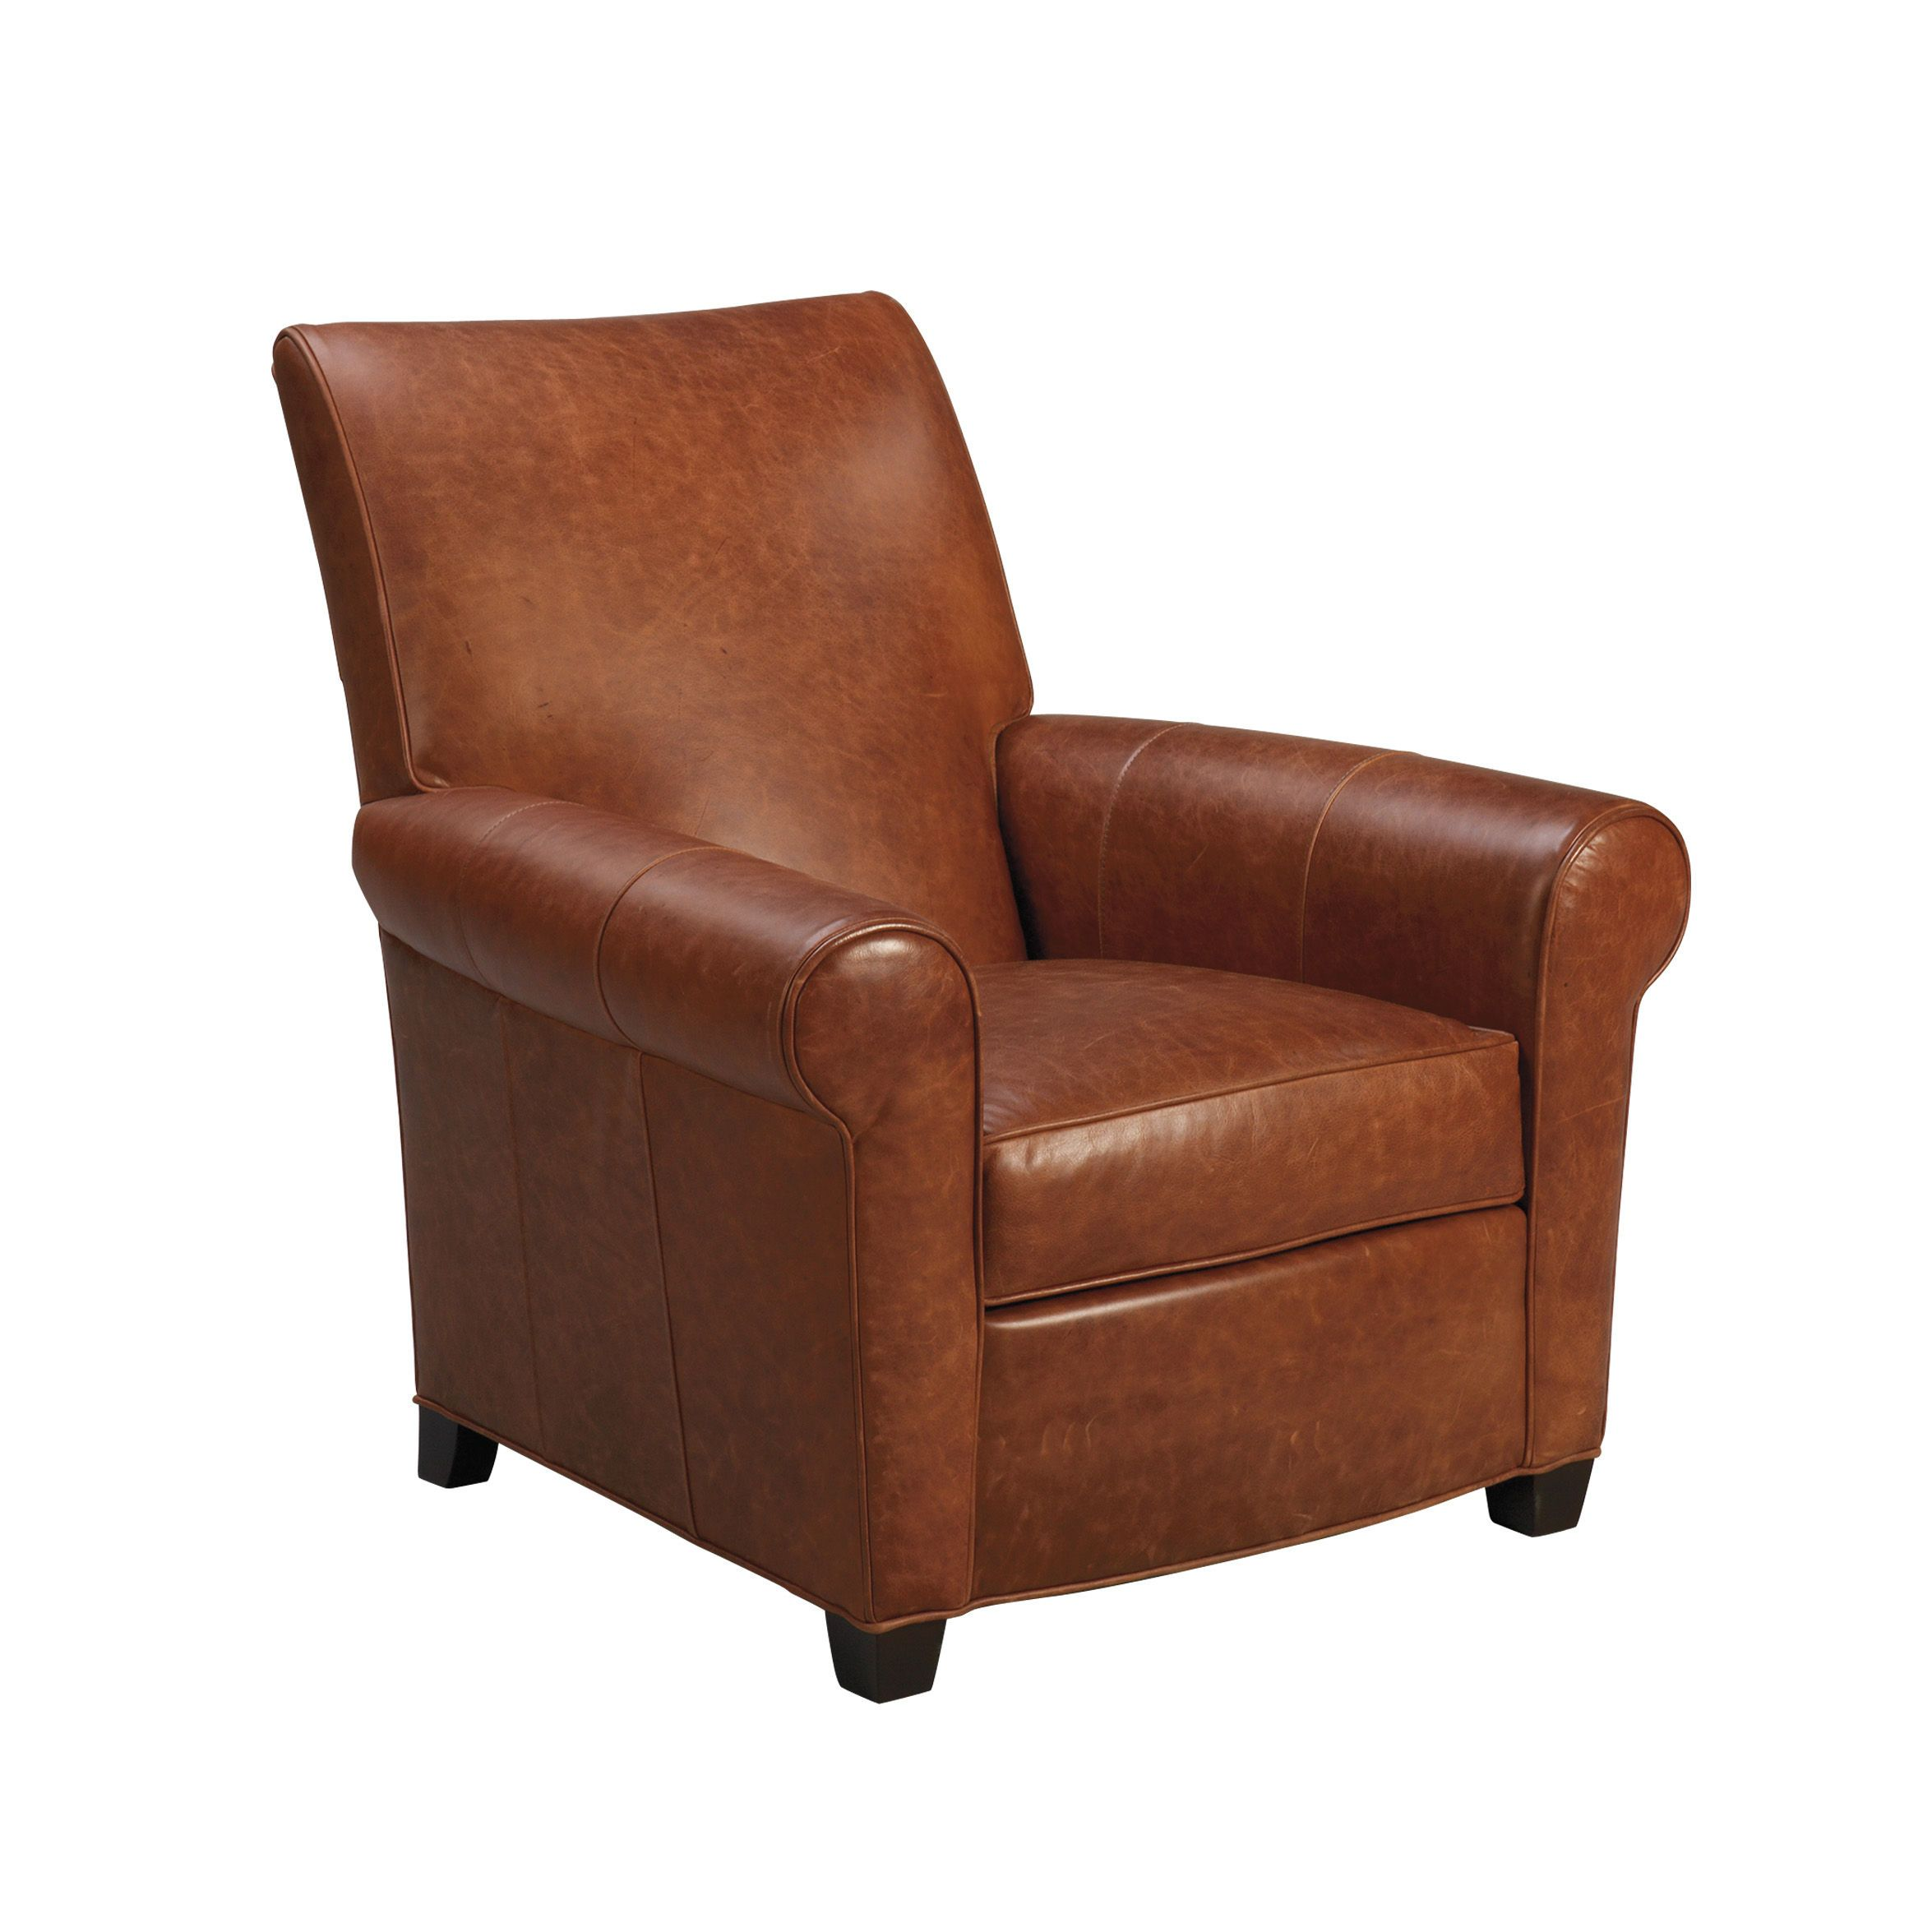 Bentley Leather Chair Ethan Allen Us Leather Chair Chair Leather Ottoman